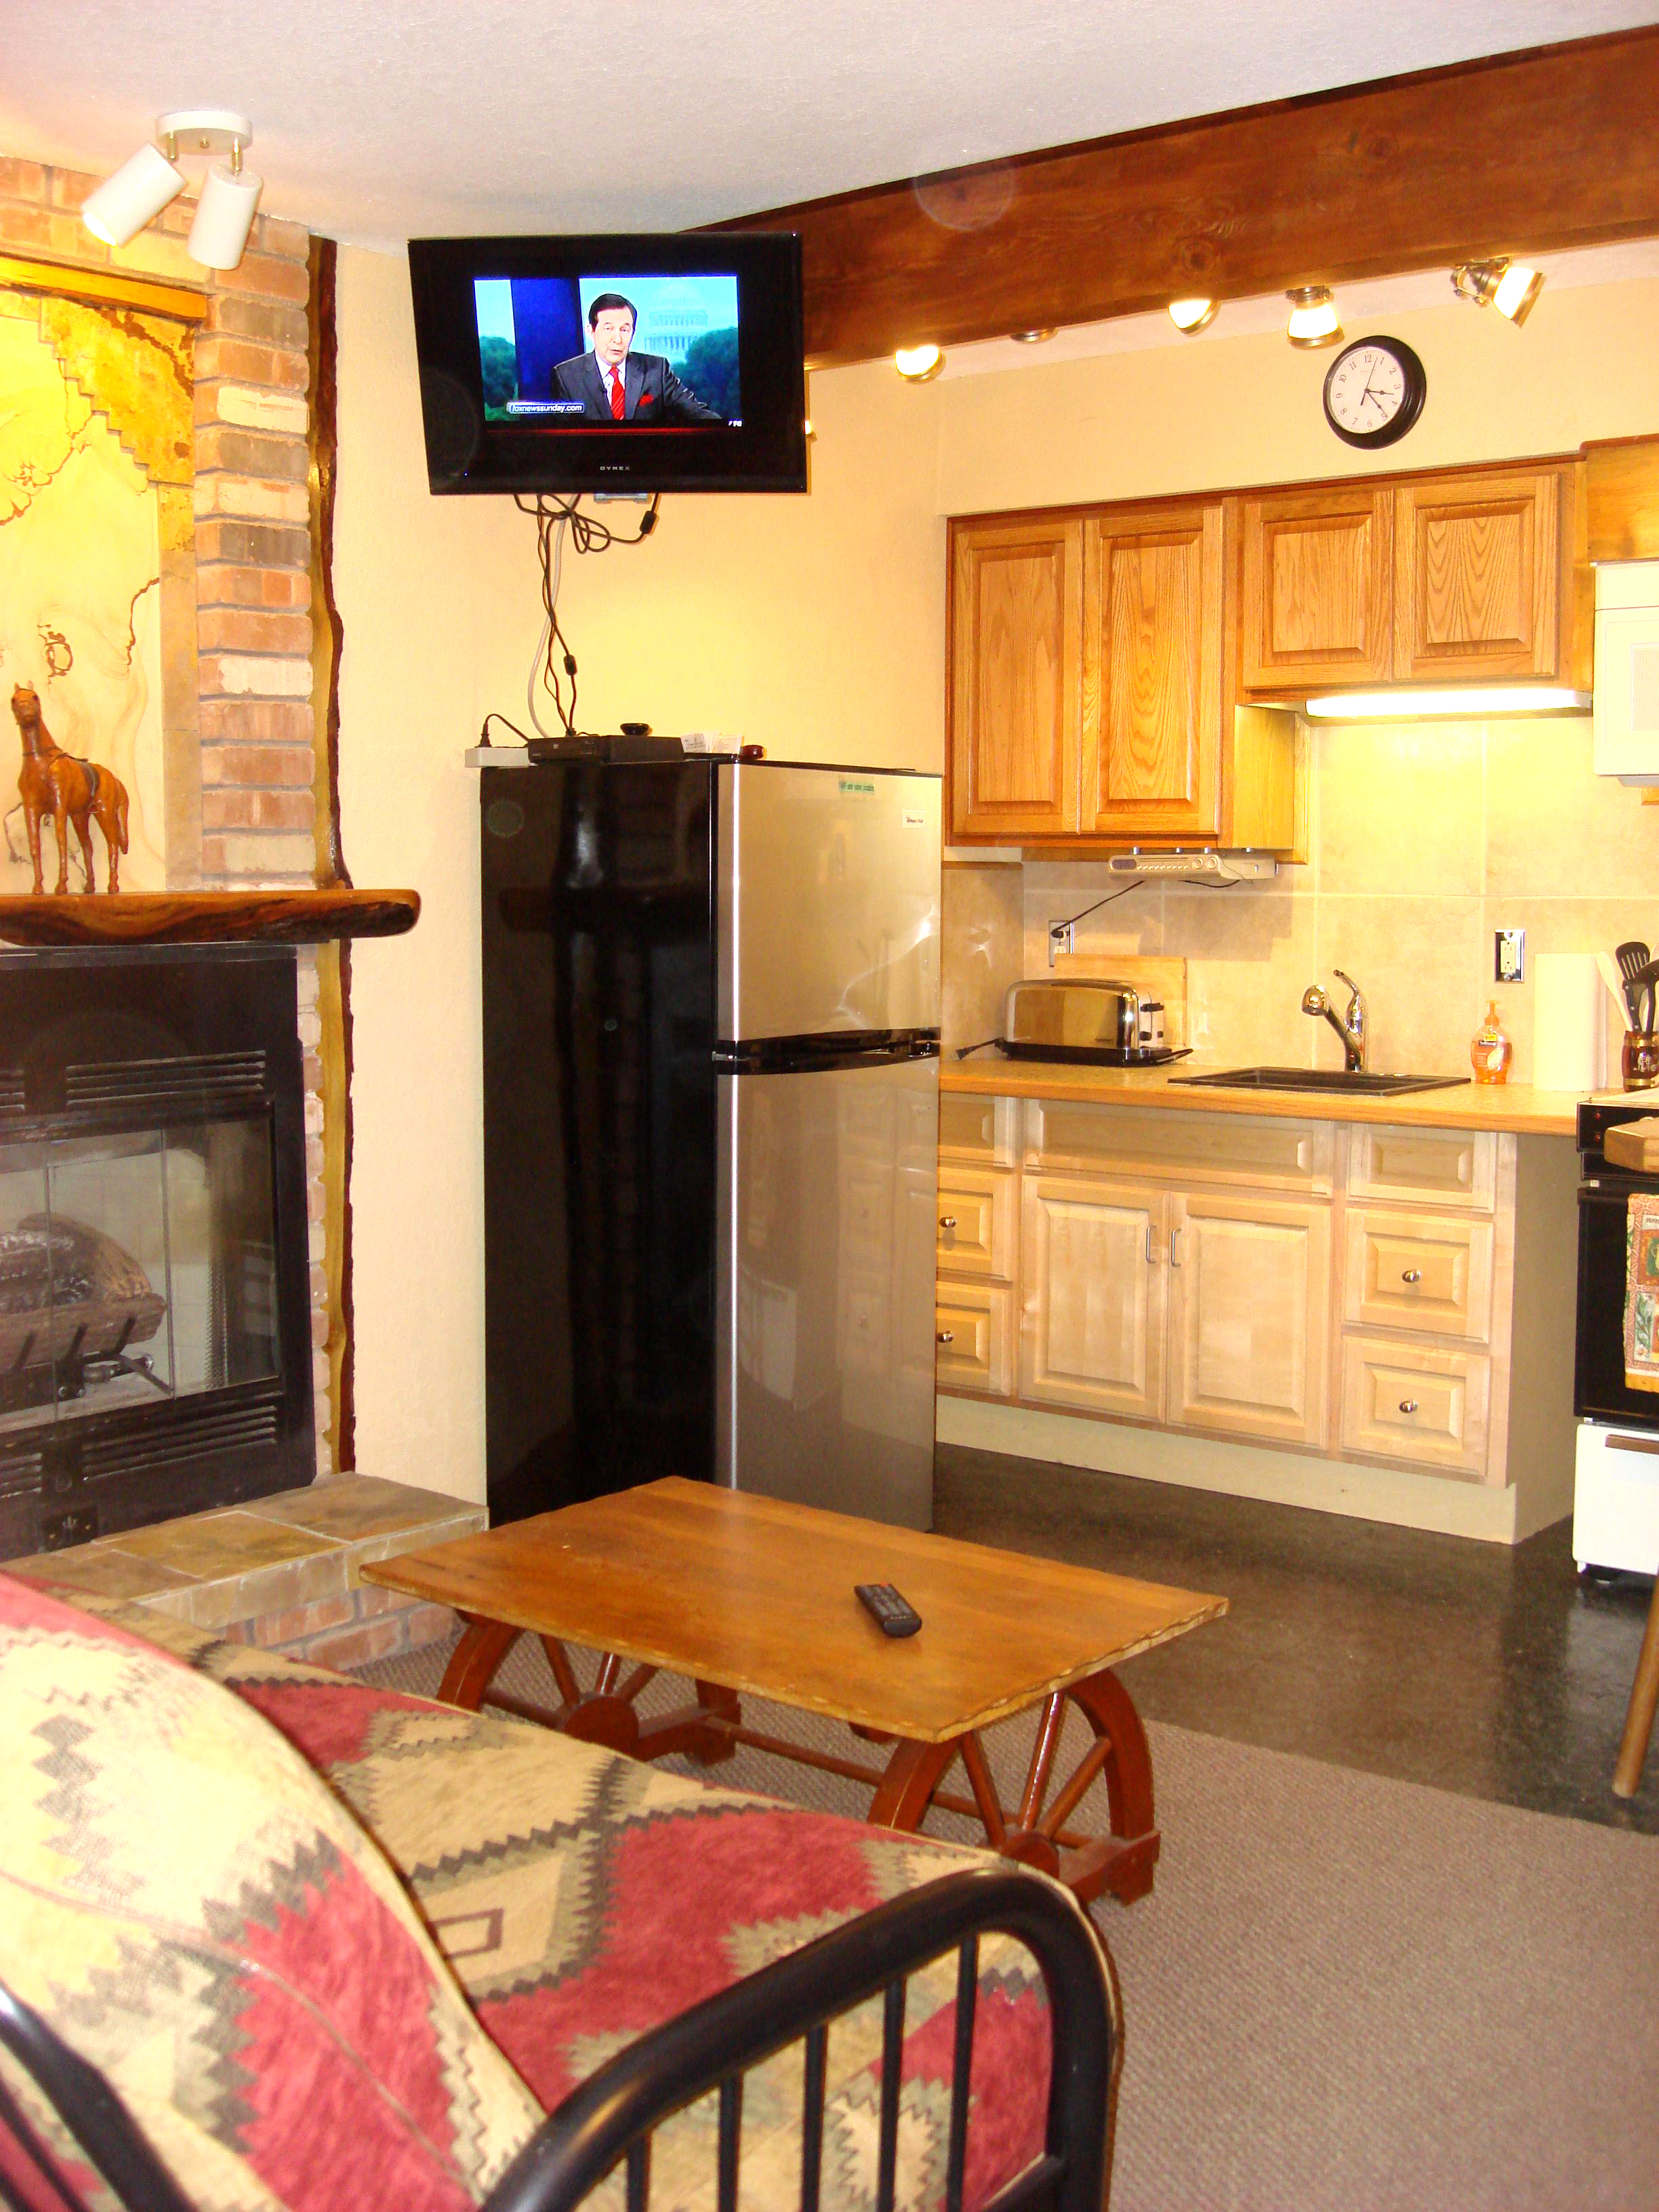 arizona thedomecabin pine media facebook in home dome rental rentals id cabins cabin the